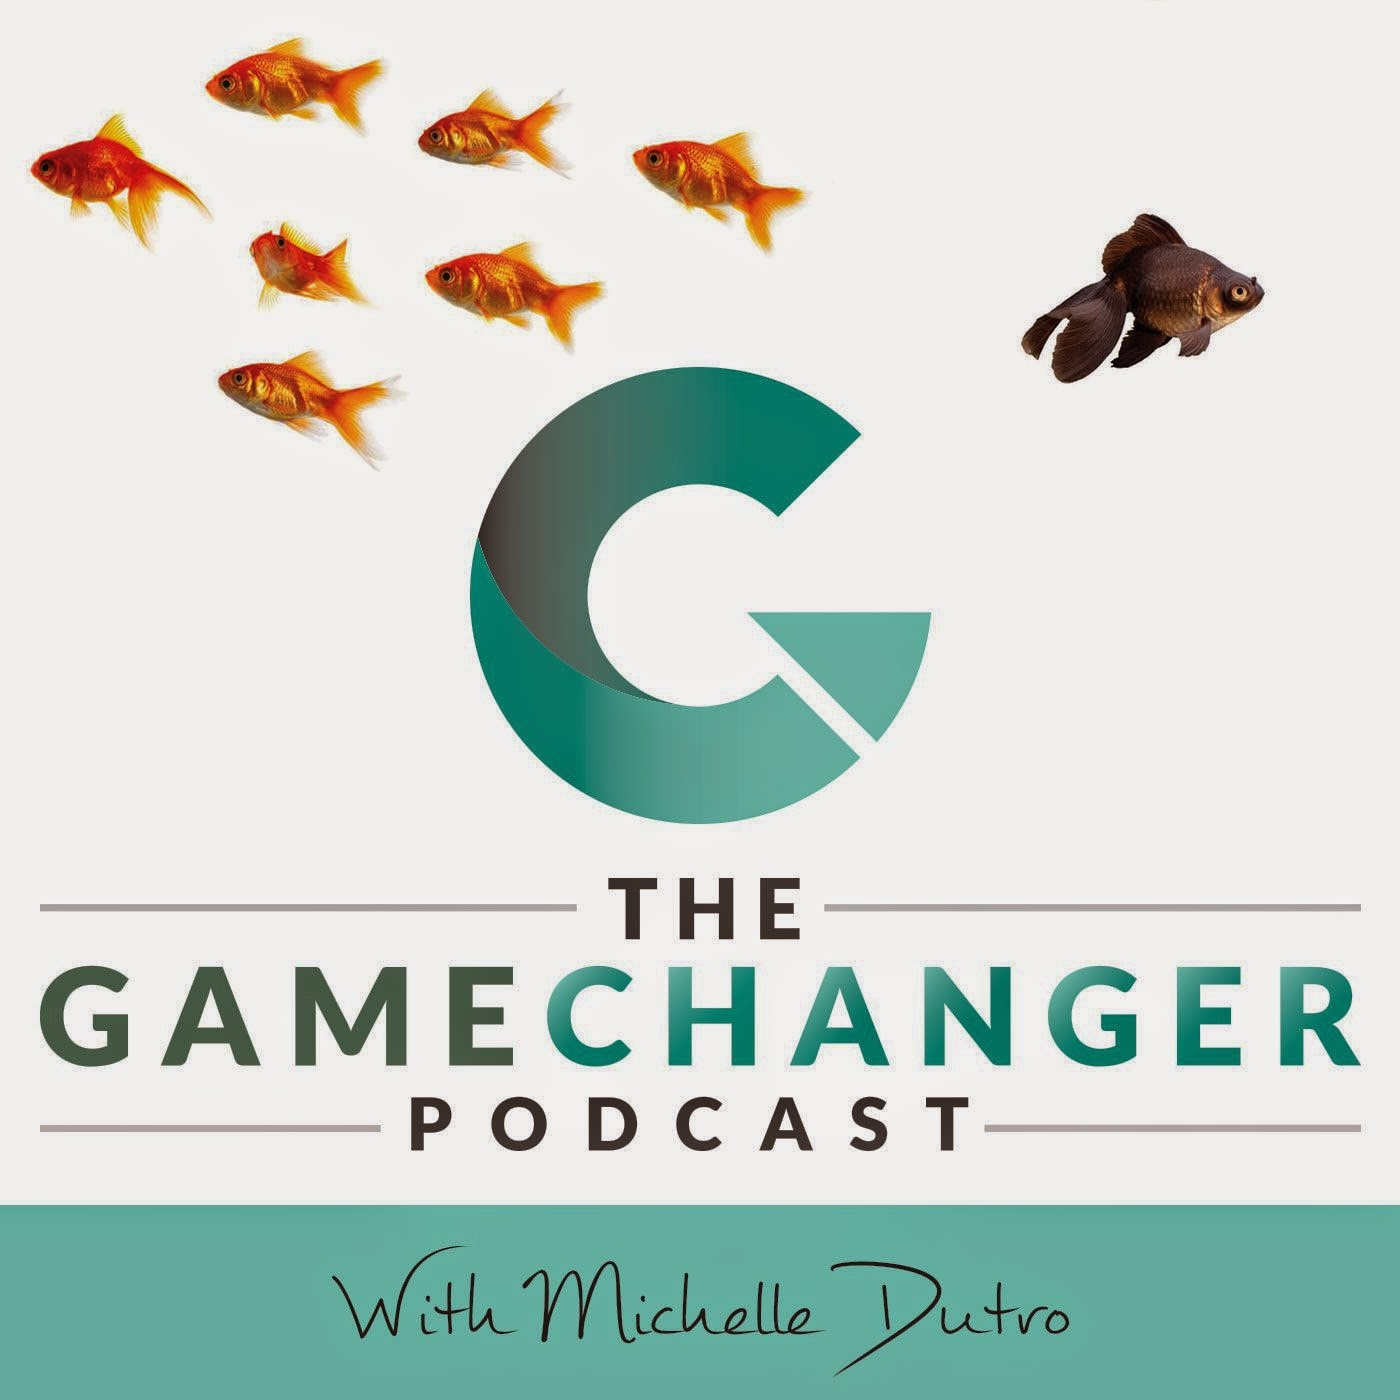 The Game Changer Podcast show art